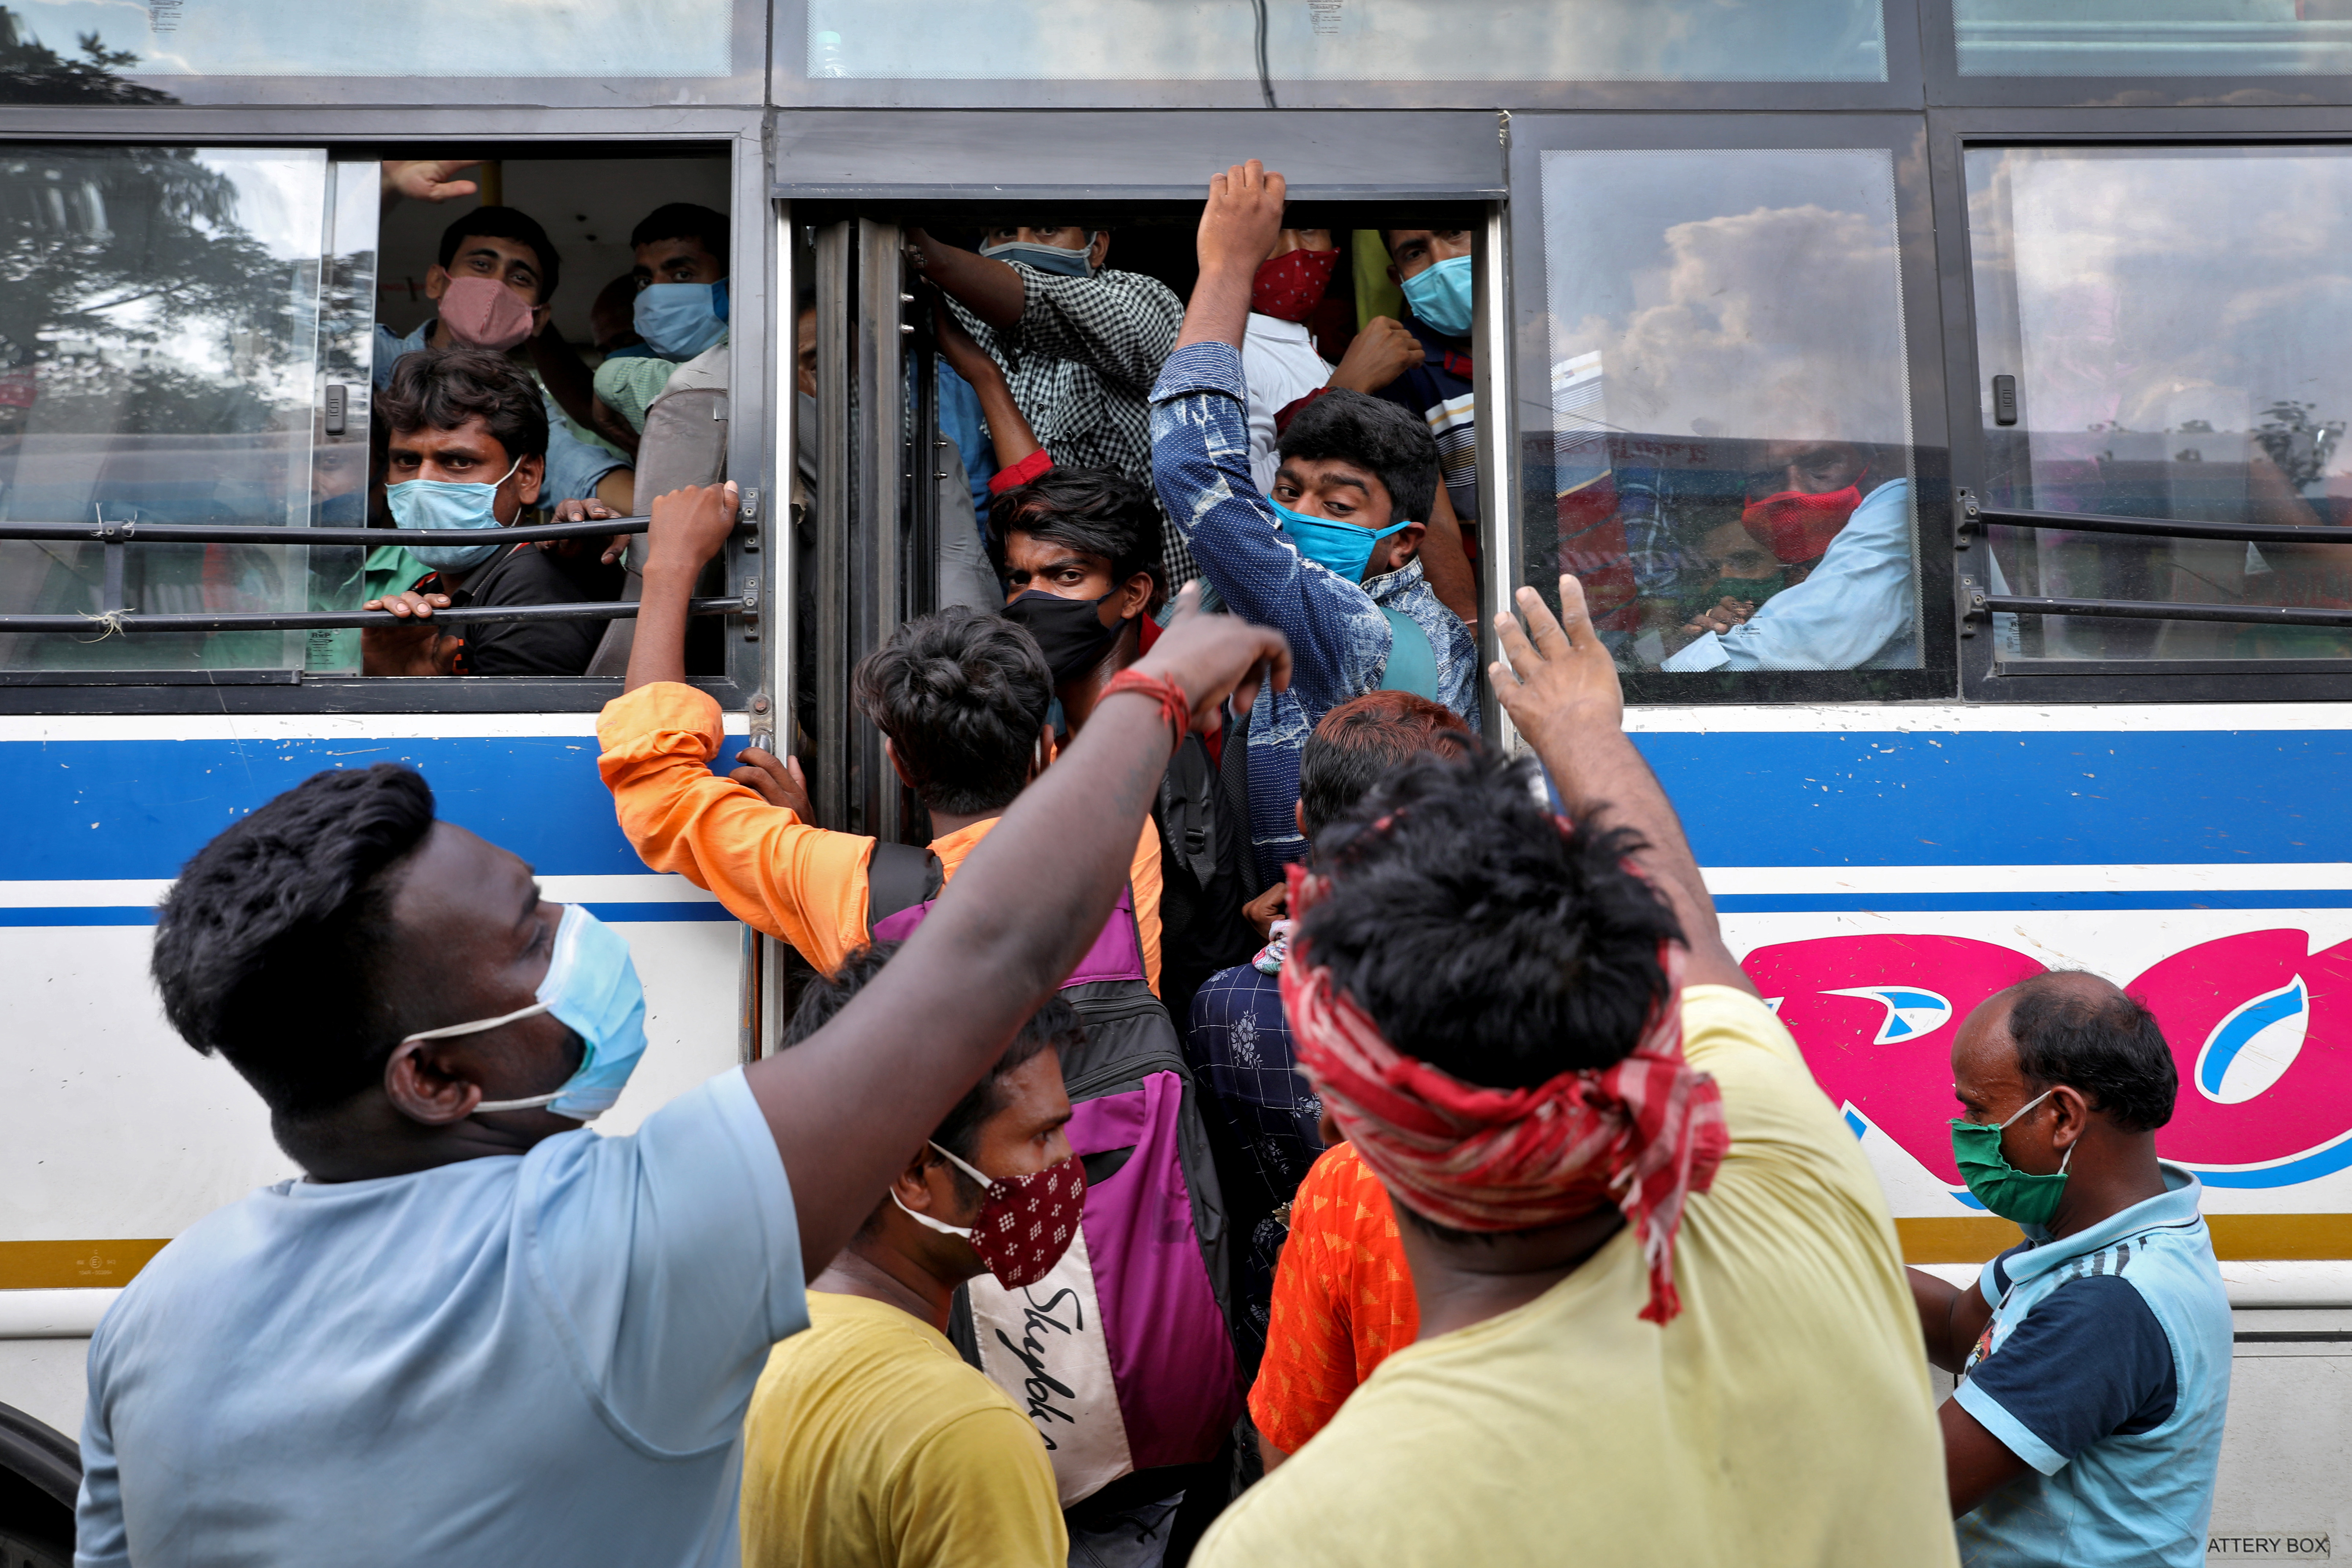 Migrant workers board an overcrowded bus to return to their cities and villages after the West Bengal state government imposed a partial lockdown to limit the spread of the coronavirus disease (COVID-19) in Kolkata, May 6, 2021. REUTERS/Rupak De Chowdhuri